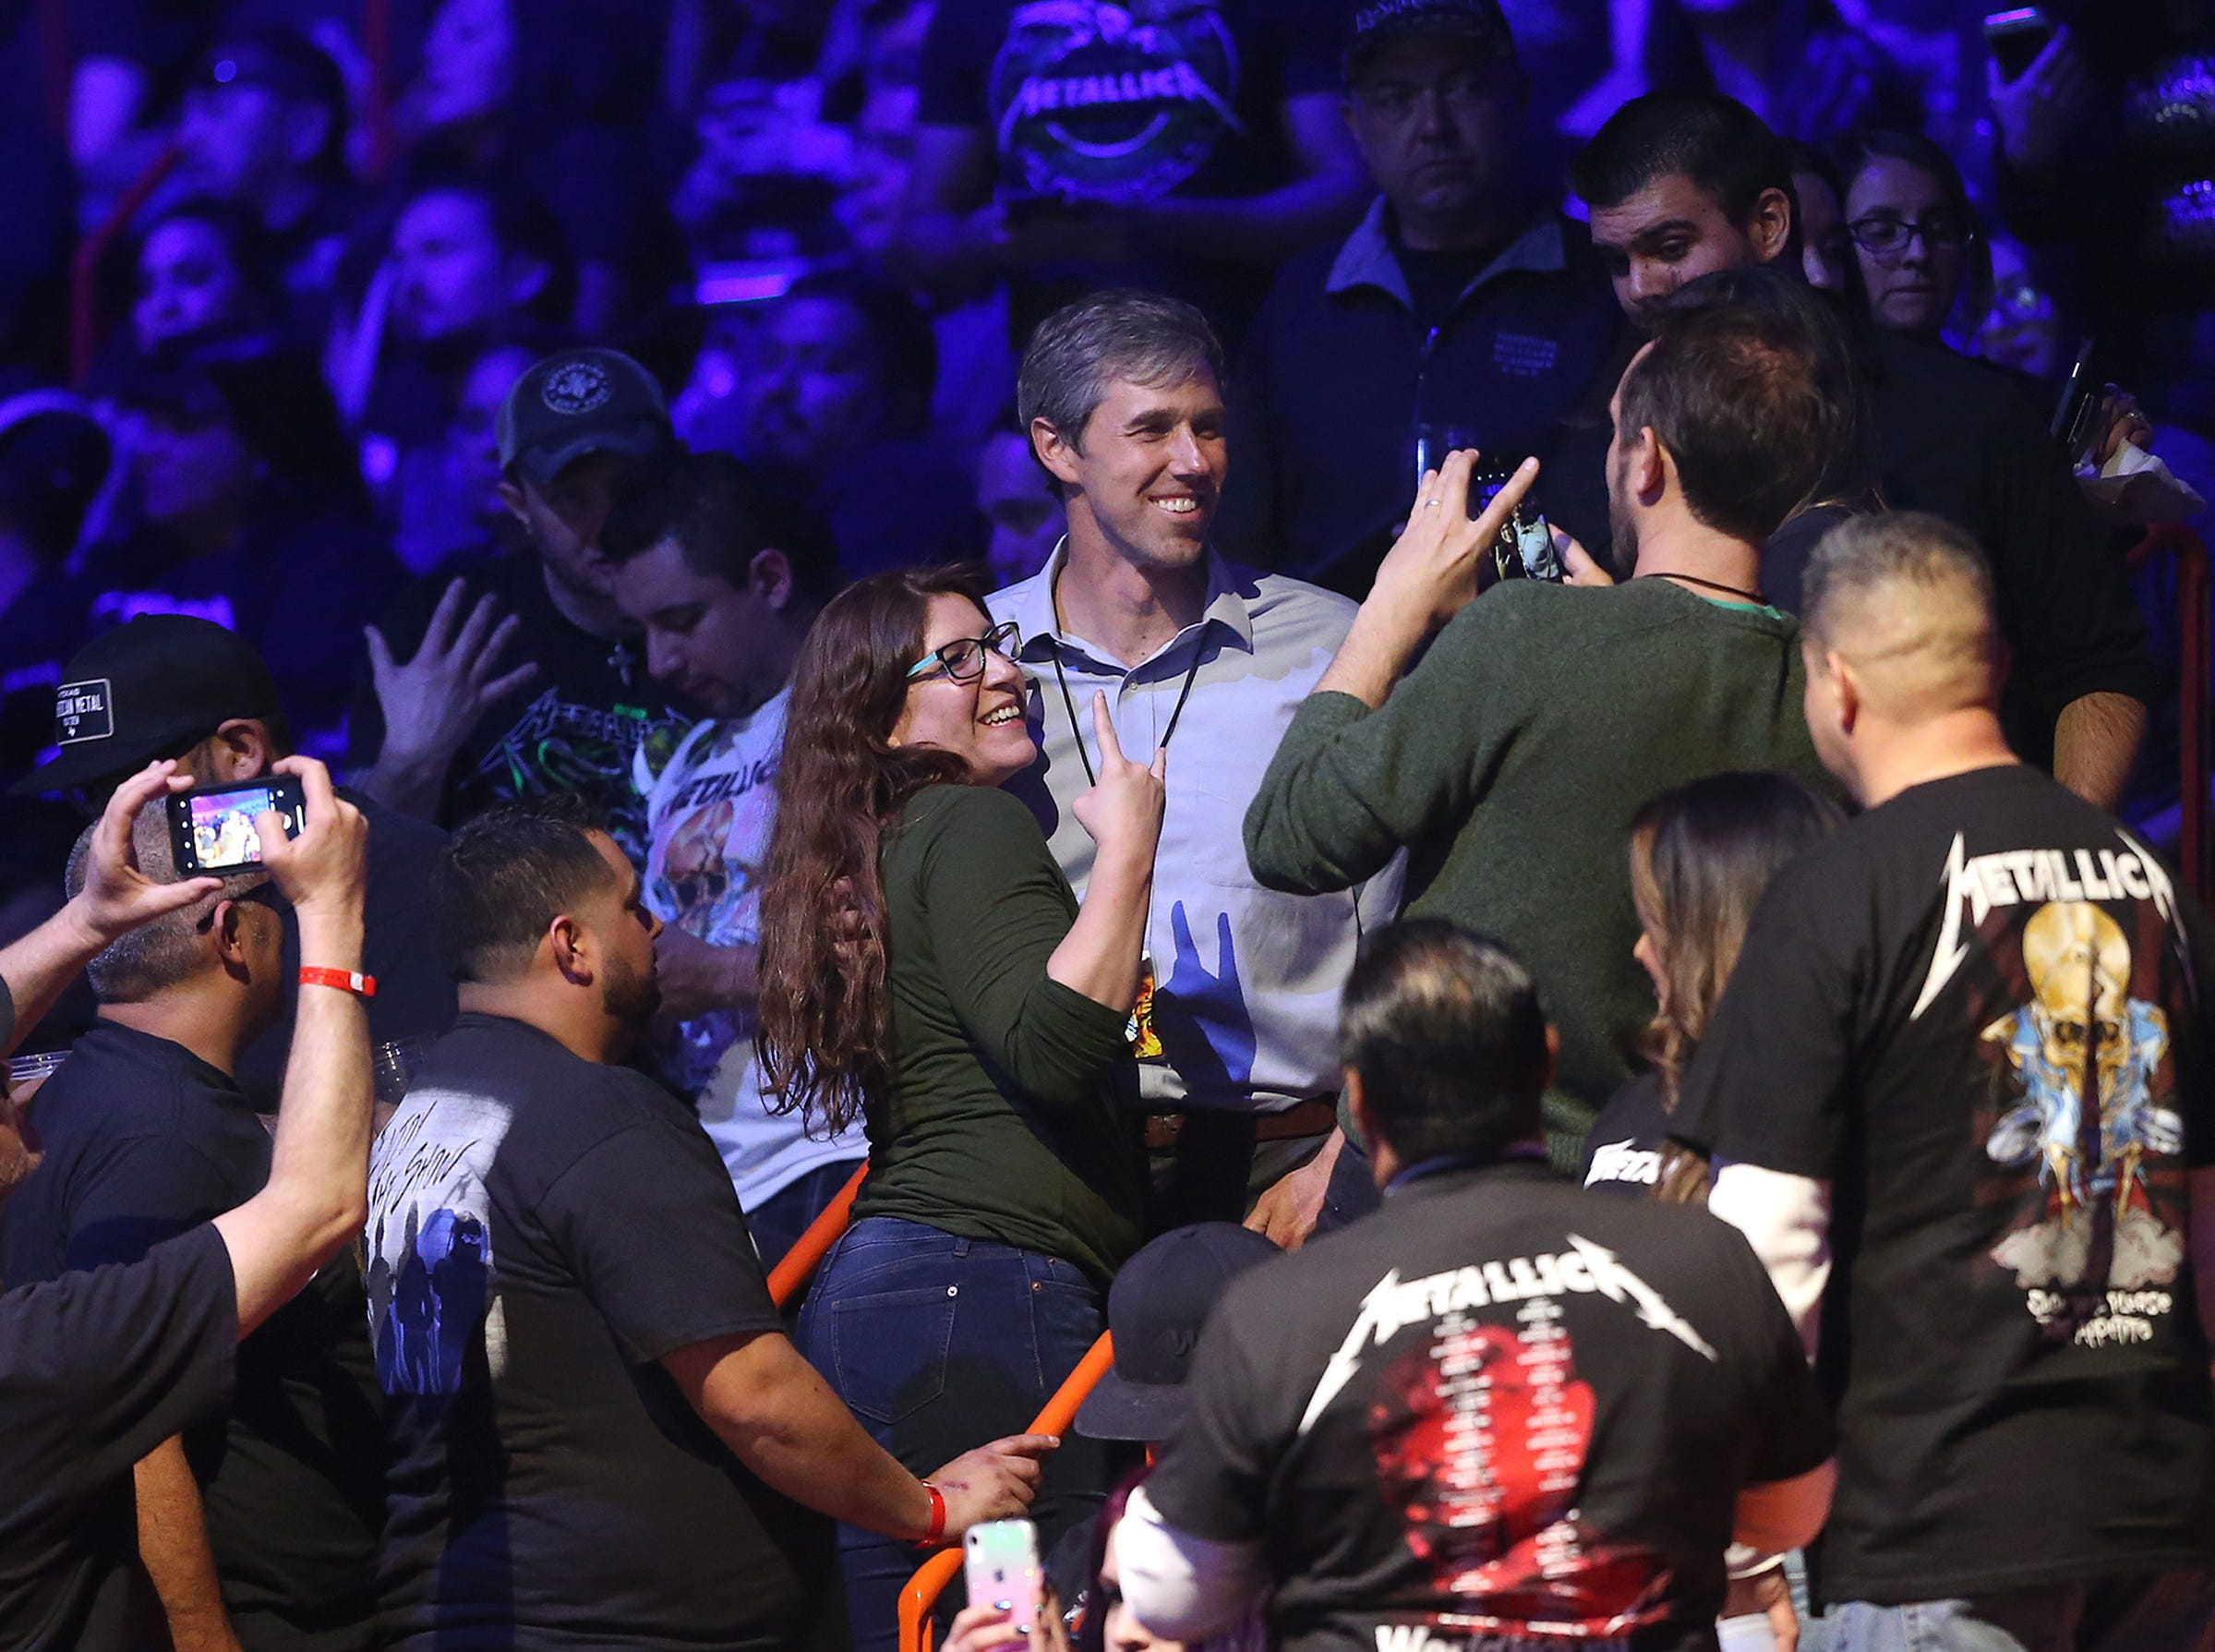 Beto O'Rourke takes photos and shakes hands in the crowd at the Metallica concert Feb. 28 at the Don Haskins Center.